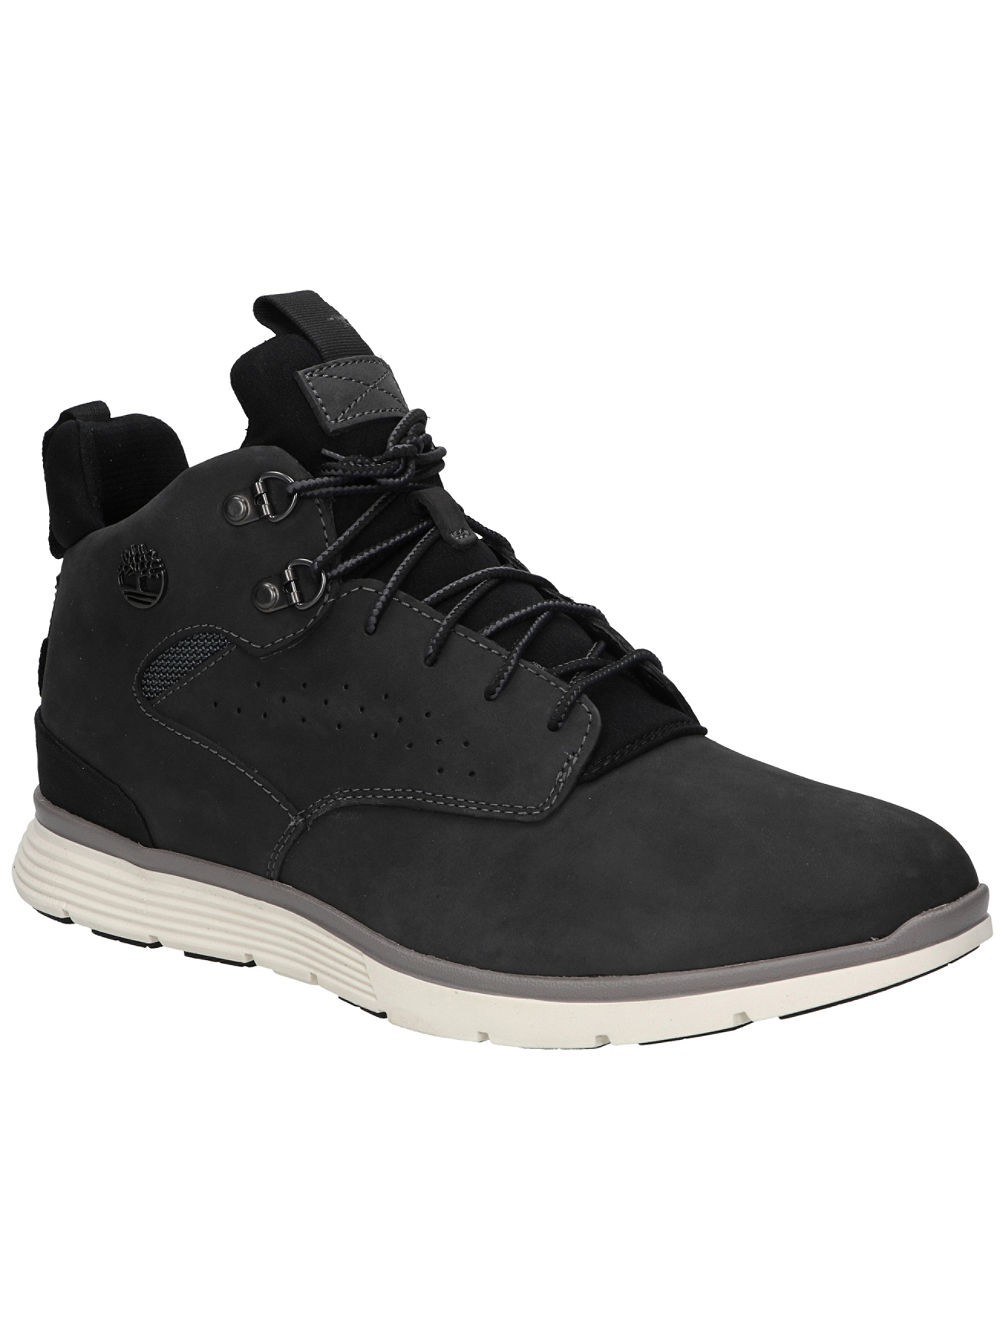 Killington Hiker Chucha Winterschuhe